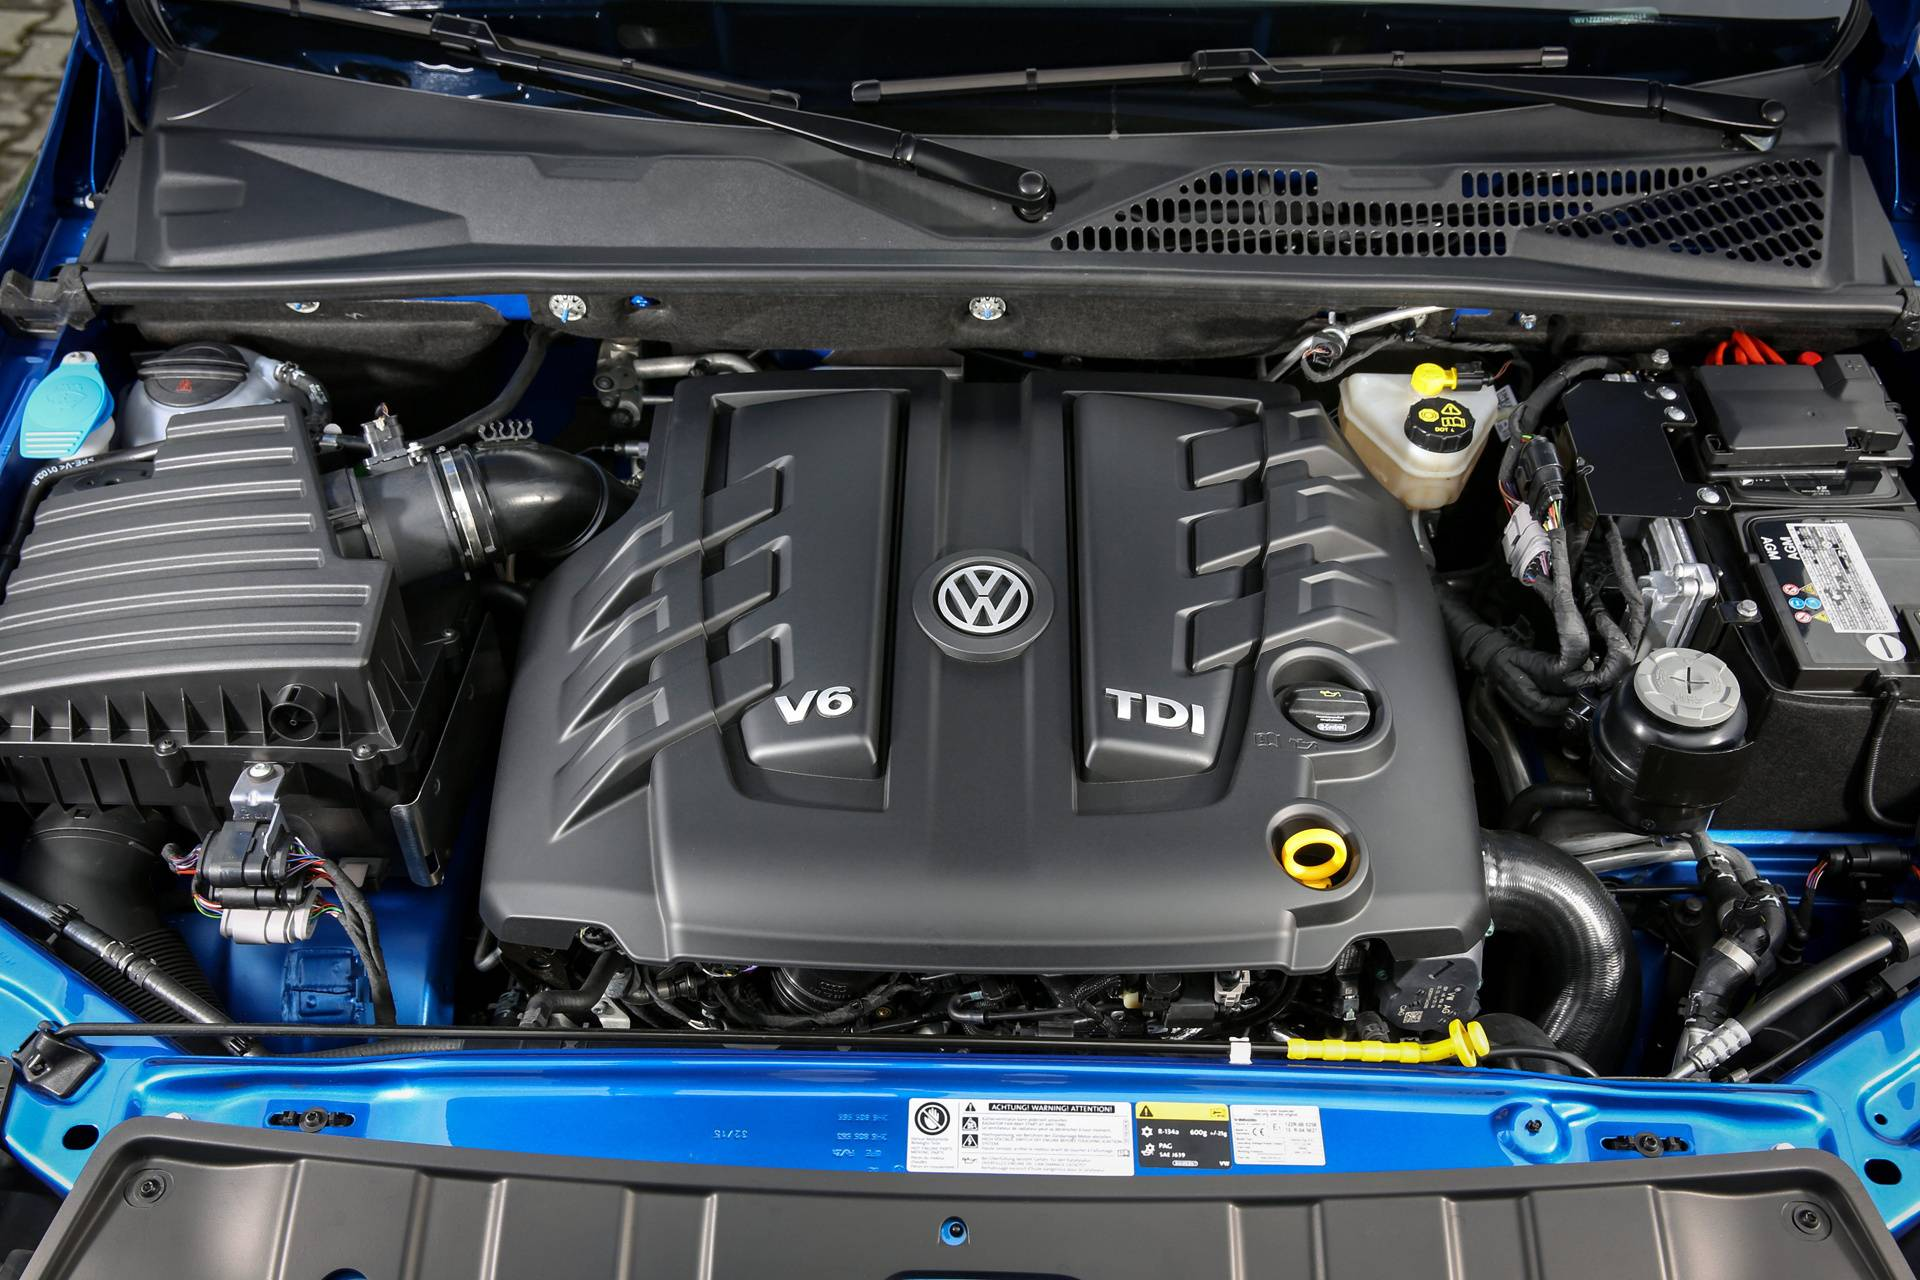 VW Engine V6 TDI